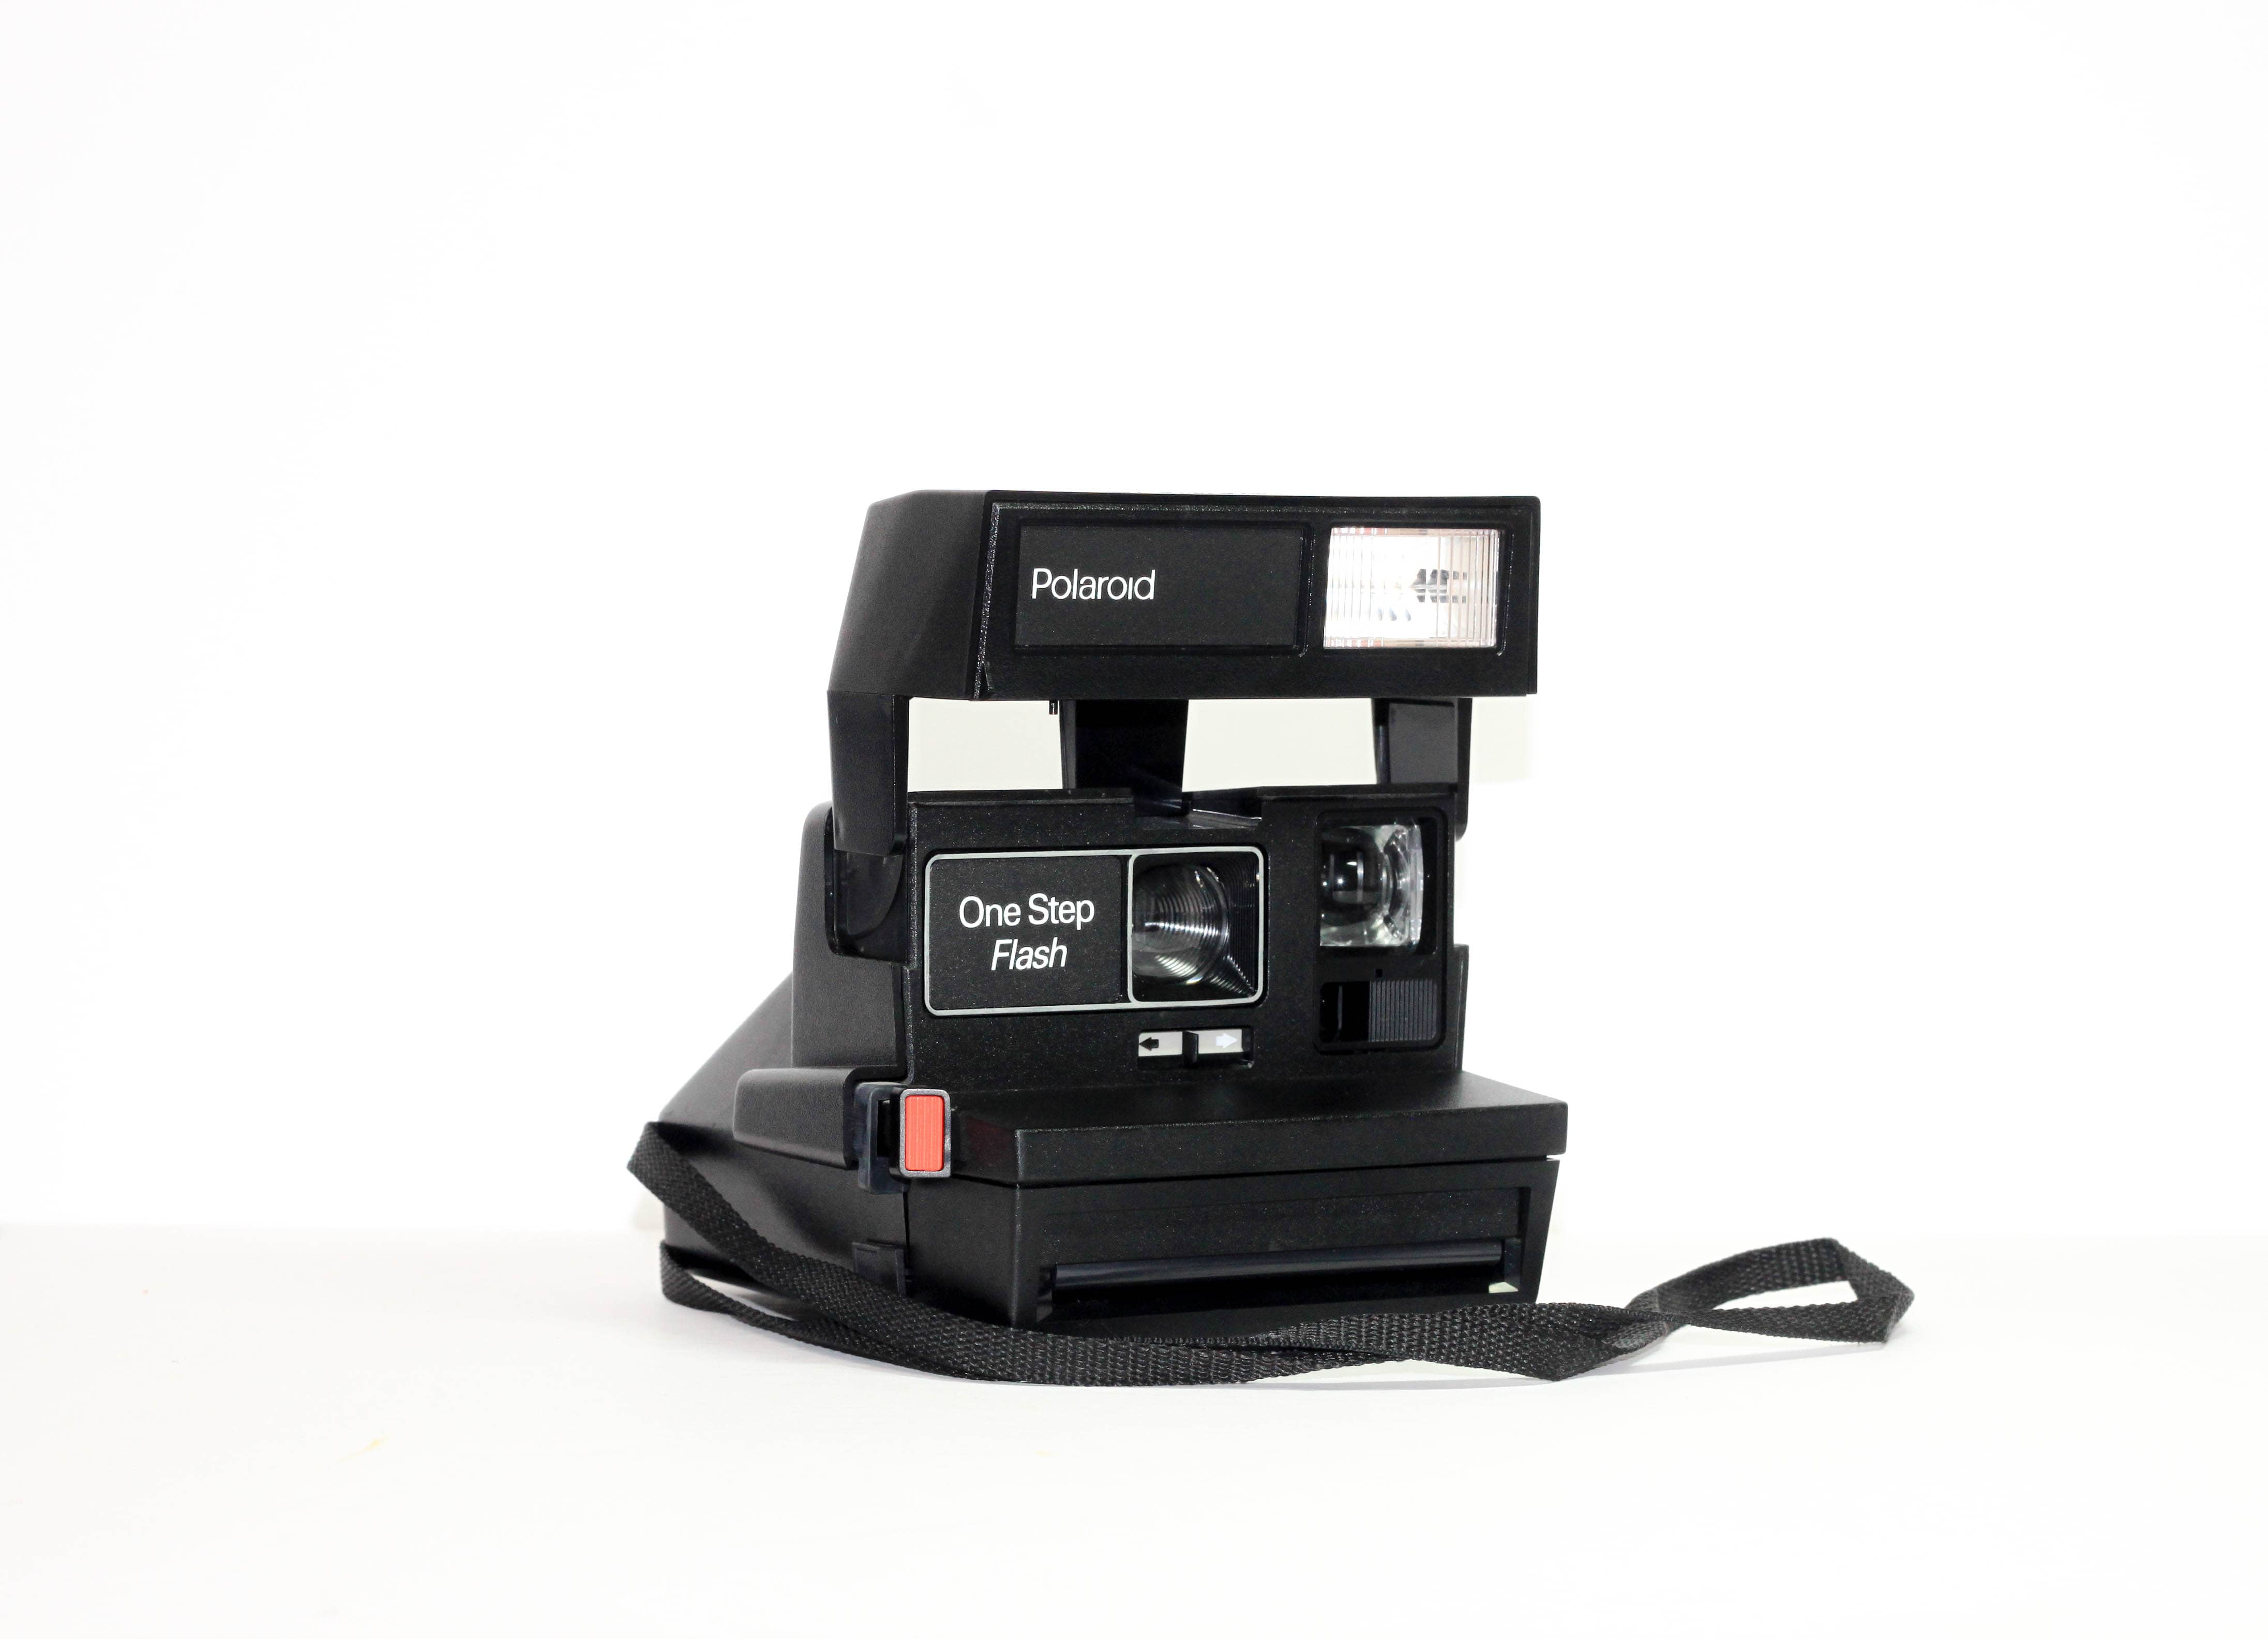 Polaroid One Step Flash - Refurbished